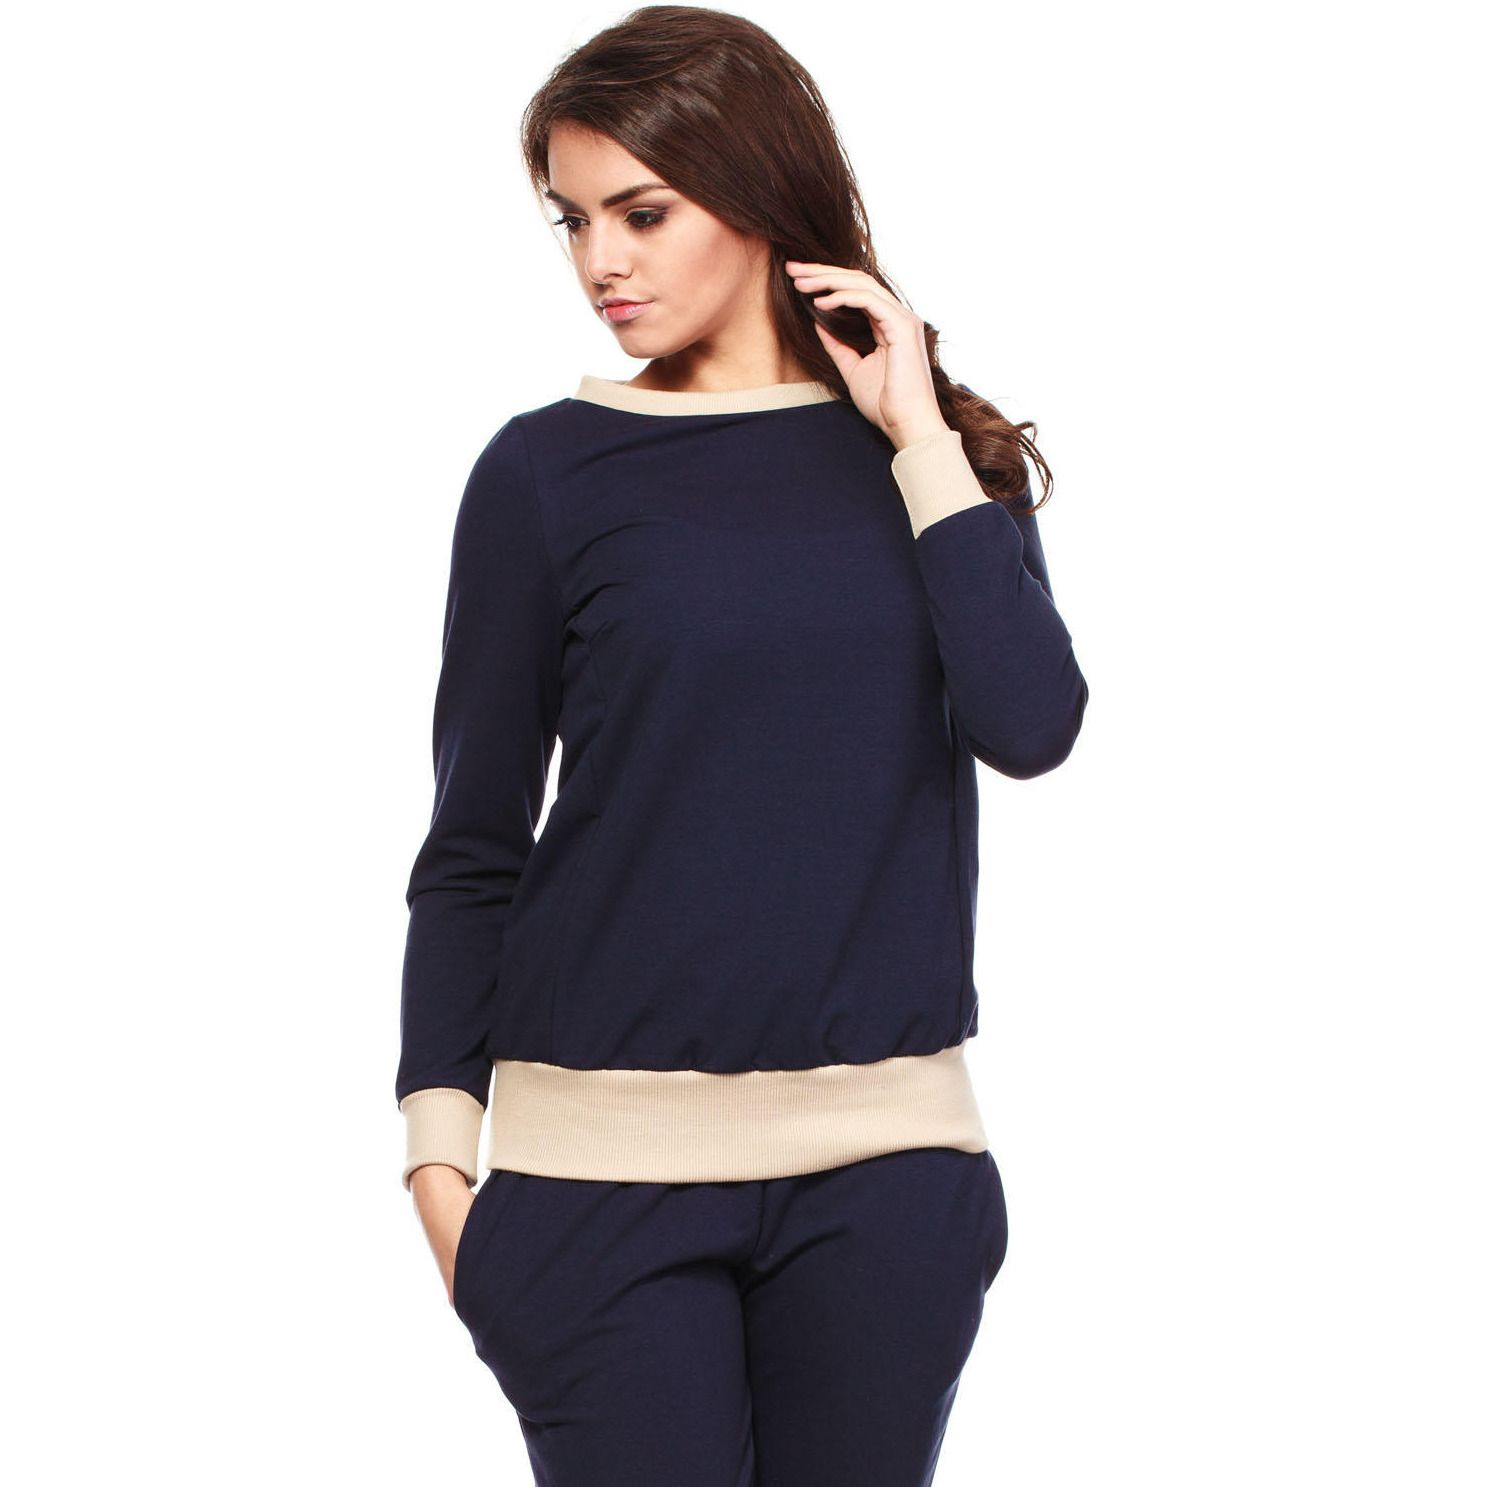 Navy Sporty Sweatshirt Long-Sleeve Top LAVELIQ